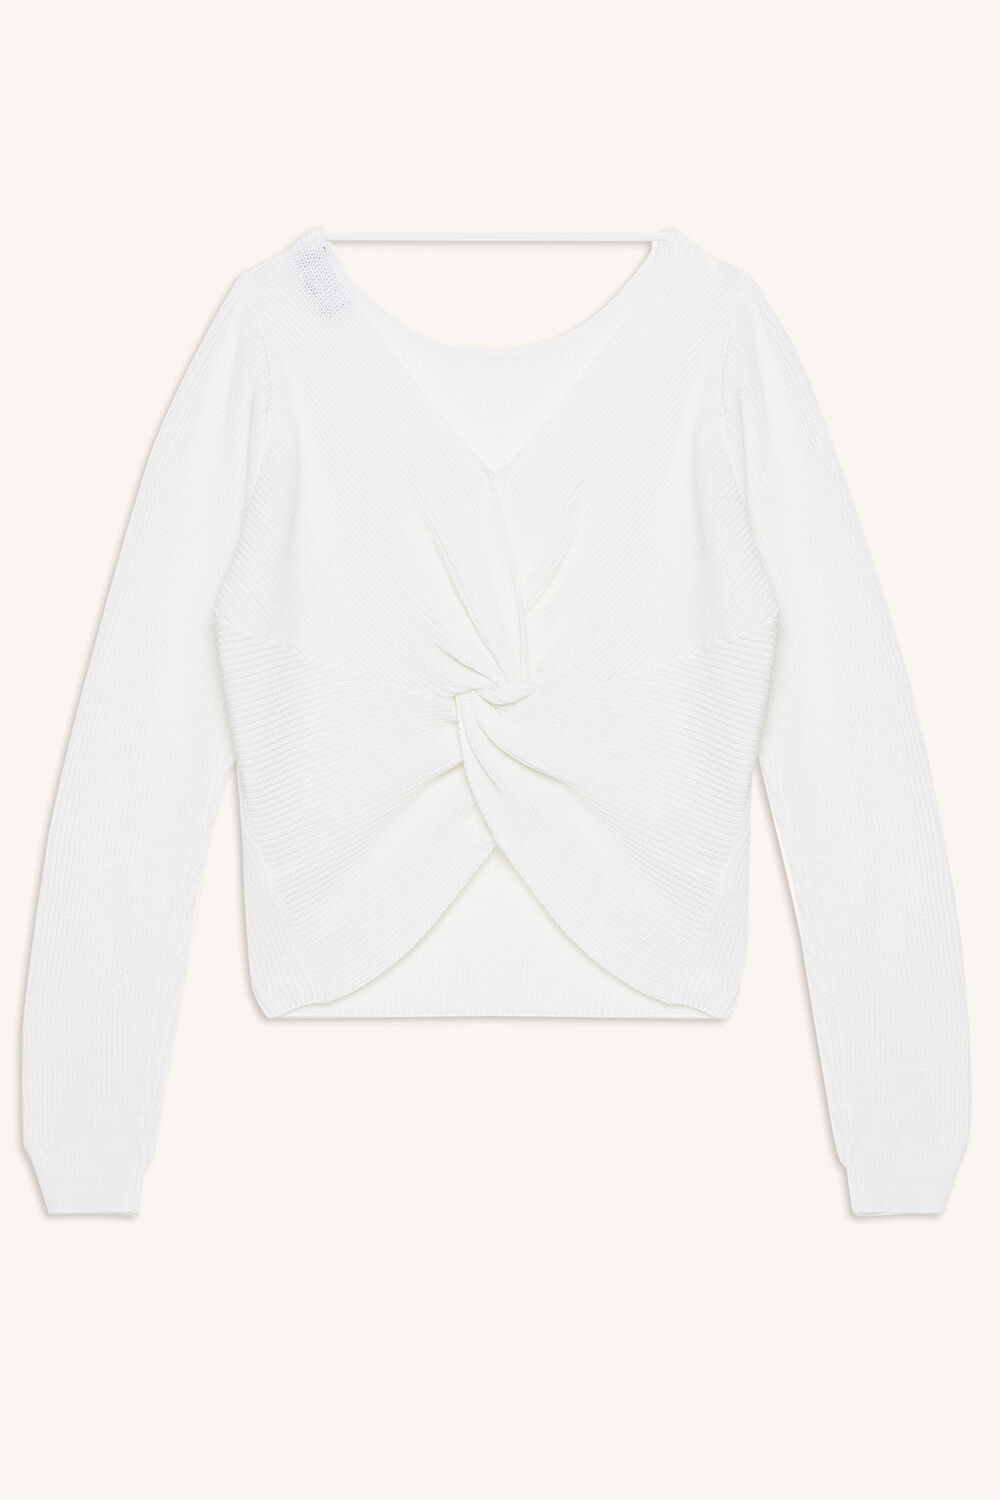 KNOT BACK SWEAT TOP in colour CLOUD DANCER